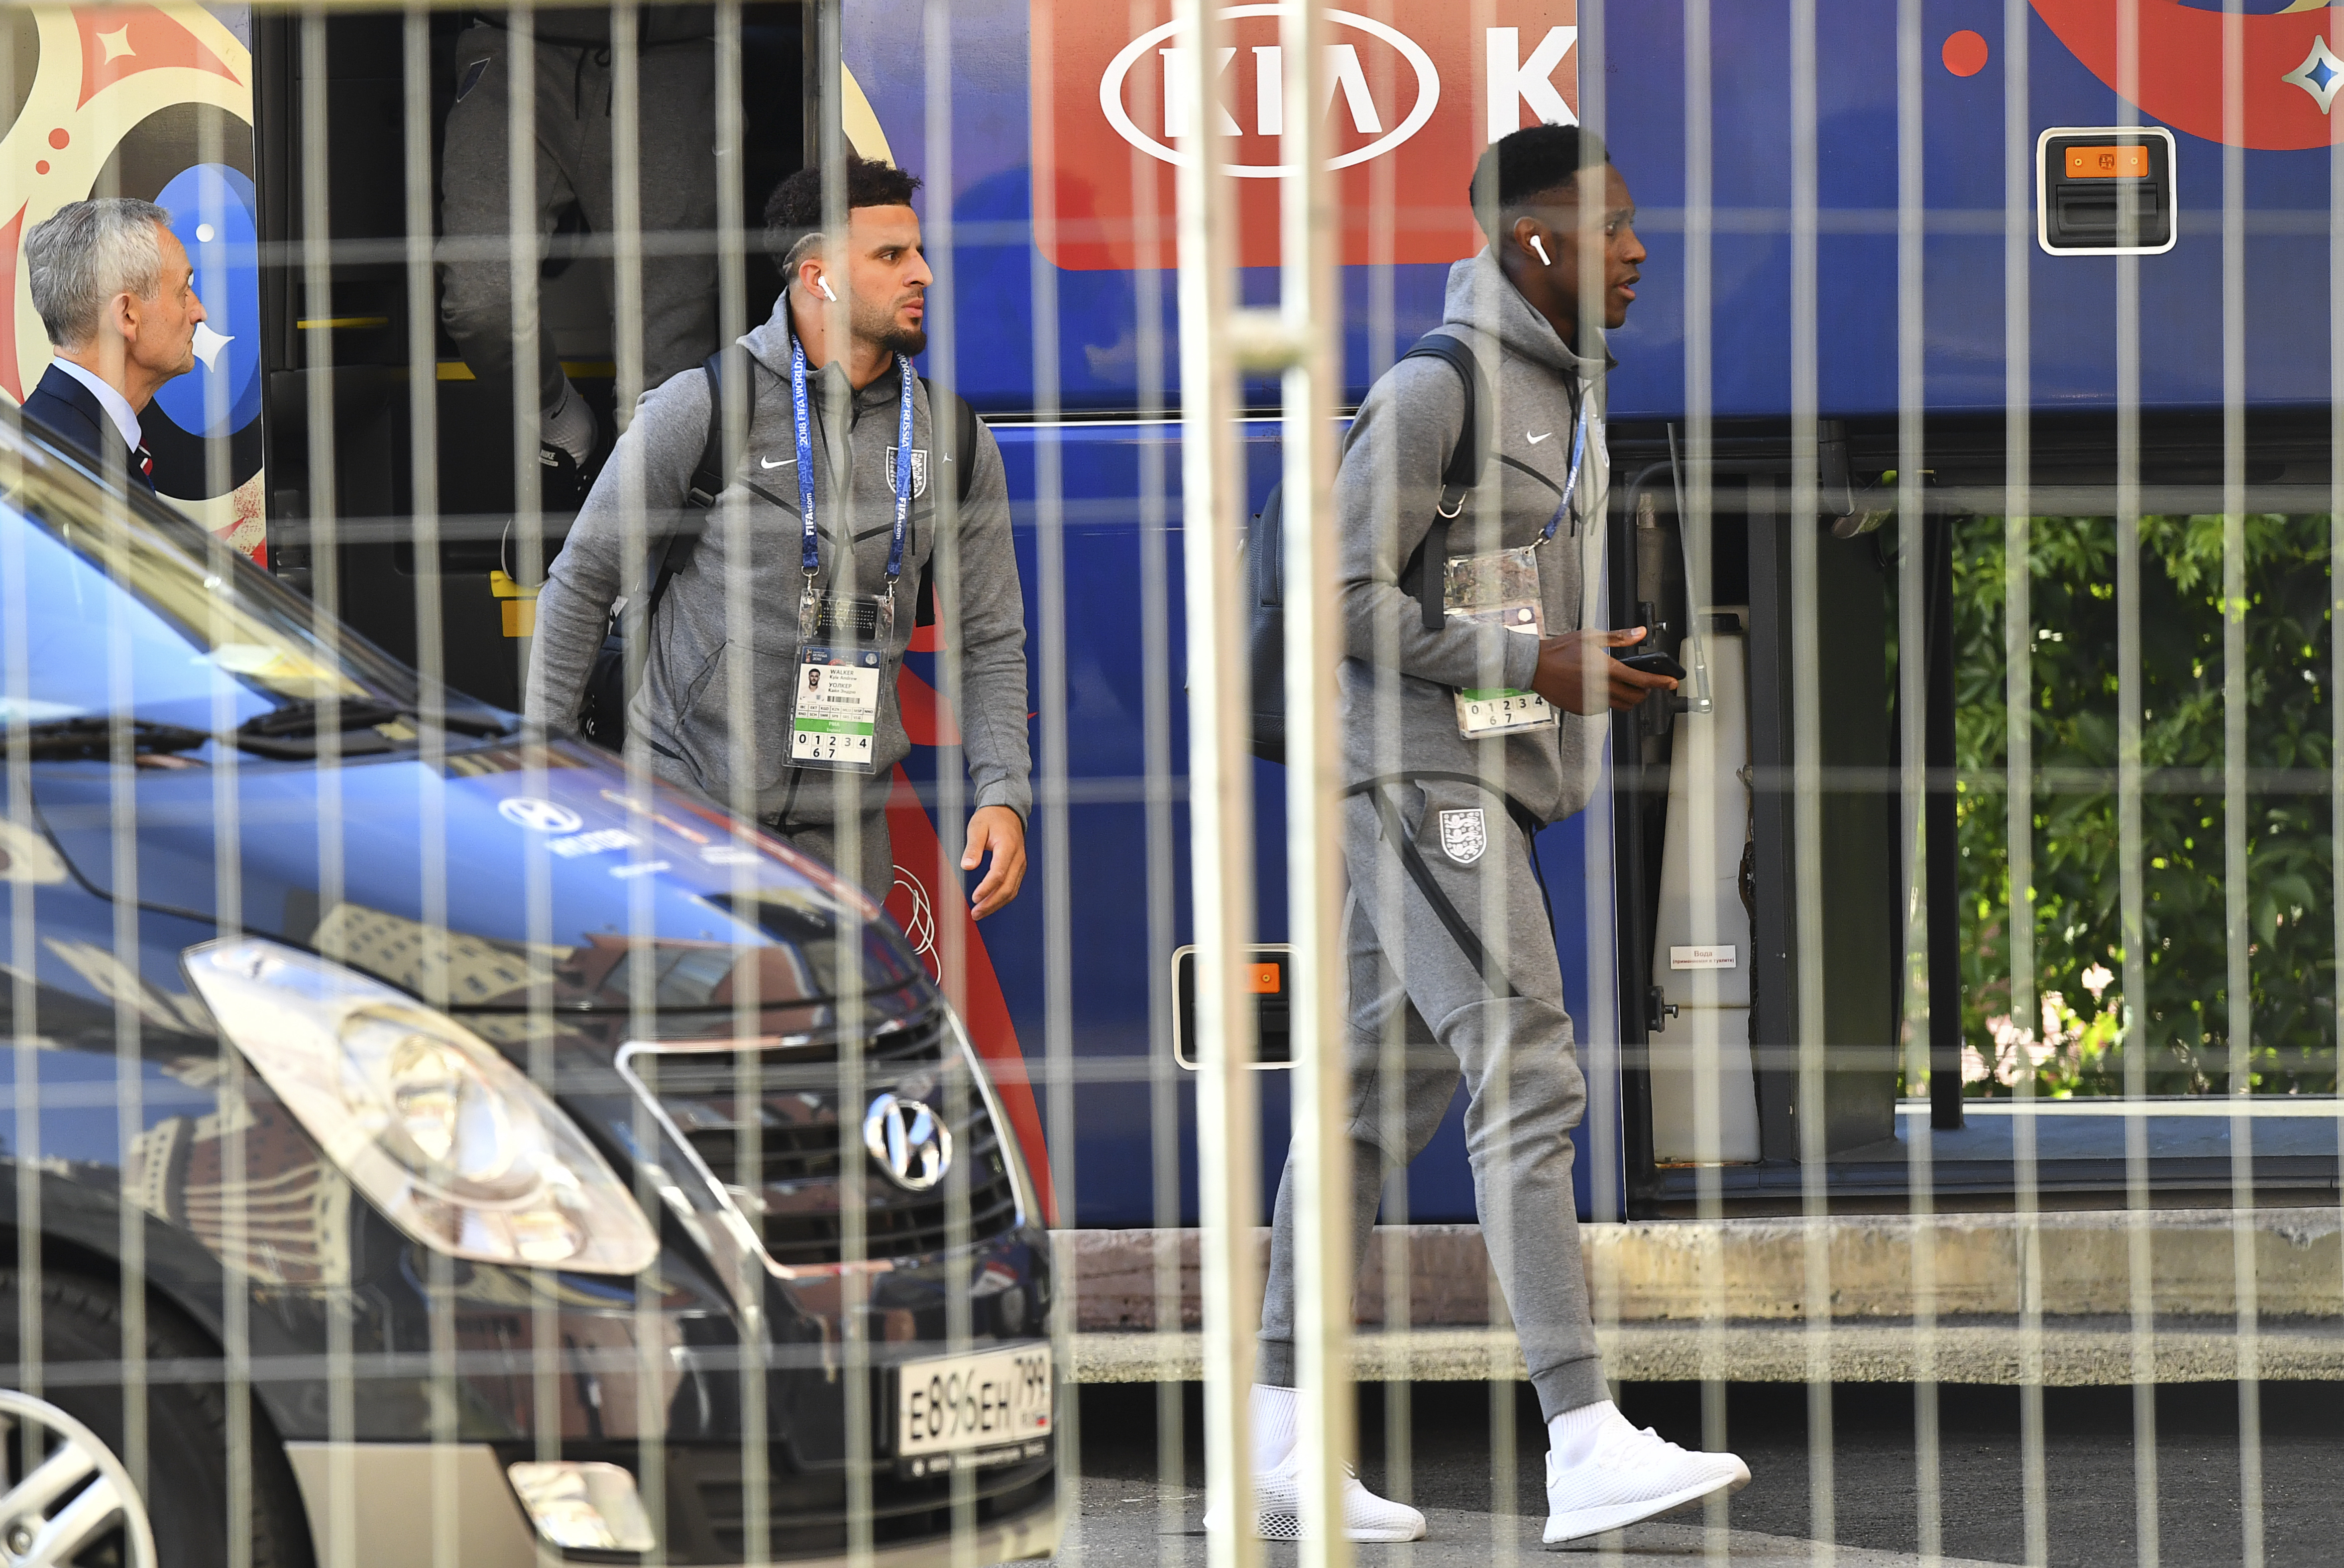 Soccer Football - World Cup - England Arrival - Samara, Russia - July 6, 2018. Kyle Walker and Danny Welbeck walk out of a bus as they arrive at a hotel. REUTERS/Dylan Martinez - UP1EE7616Q2FO